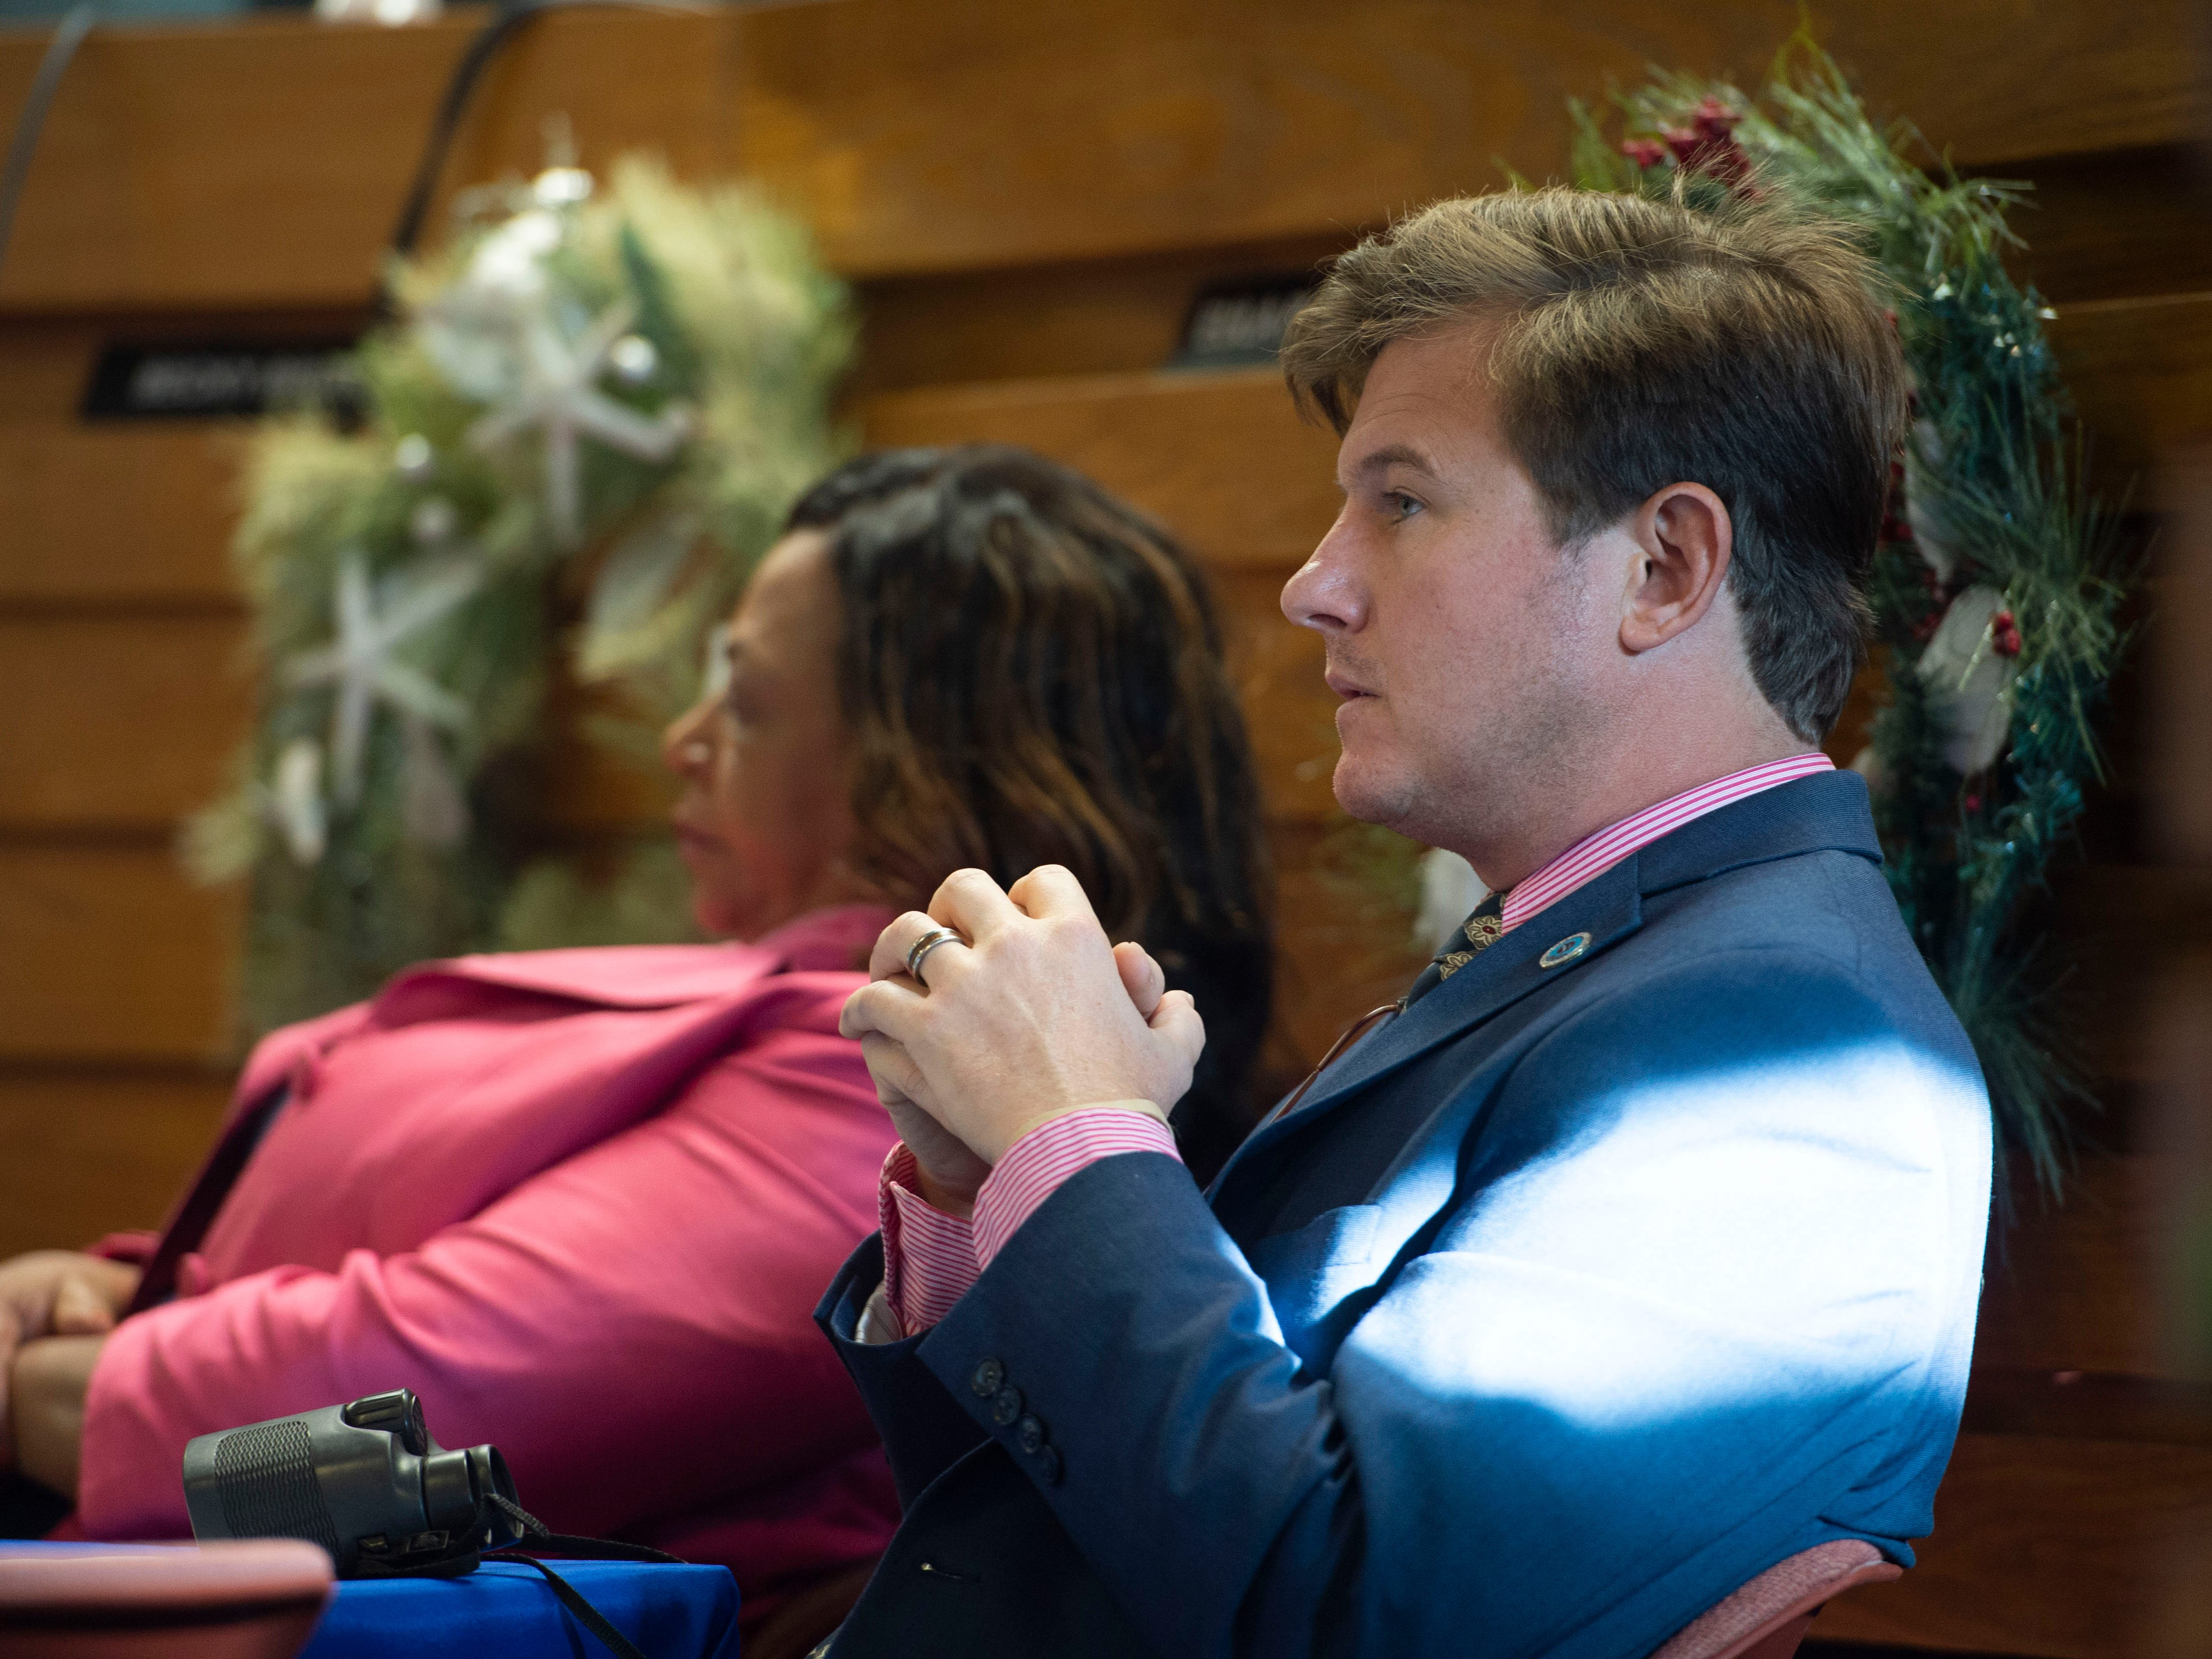 The Stuart Community Redevelopment Agency listened to two proposals for the redevelopment of a 7-acre piece of property, including Sailfish Park, by New Urban Communities and Rich Properties, before listening to public comment during the commission meeting on Monday, Nov. 26, 2018 at Stuart City Hall. Among other plans, New Urban Communities are proposing townhouses, apartments, a co-work space and a hotel room. Rich Properties are proposing workforce housing in varying levels of affordability and pedestrian and bicycle friendly streets. Dozens of passionate residents and young baseball players spoke out in opposition of the redevelopment of the baseball fields.